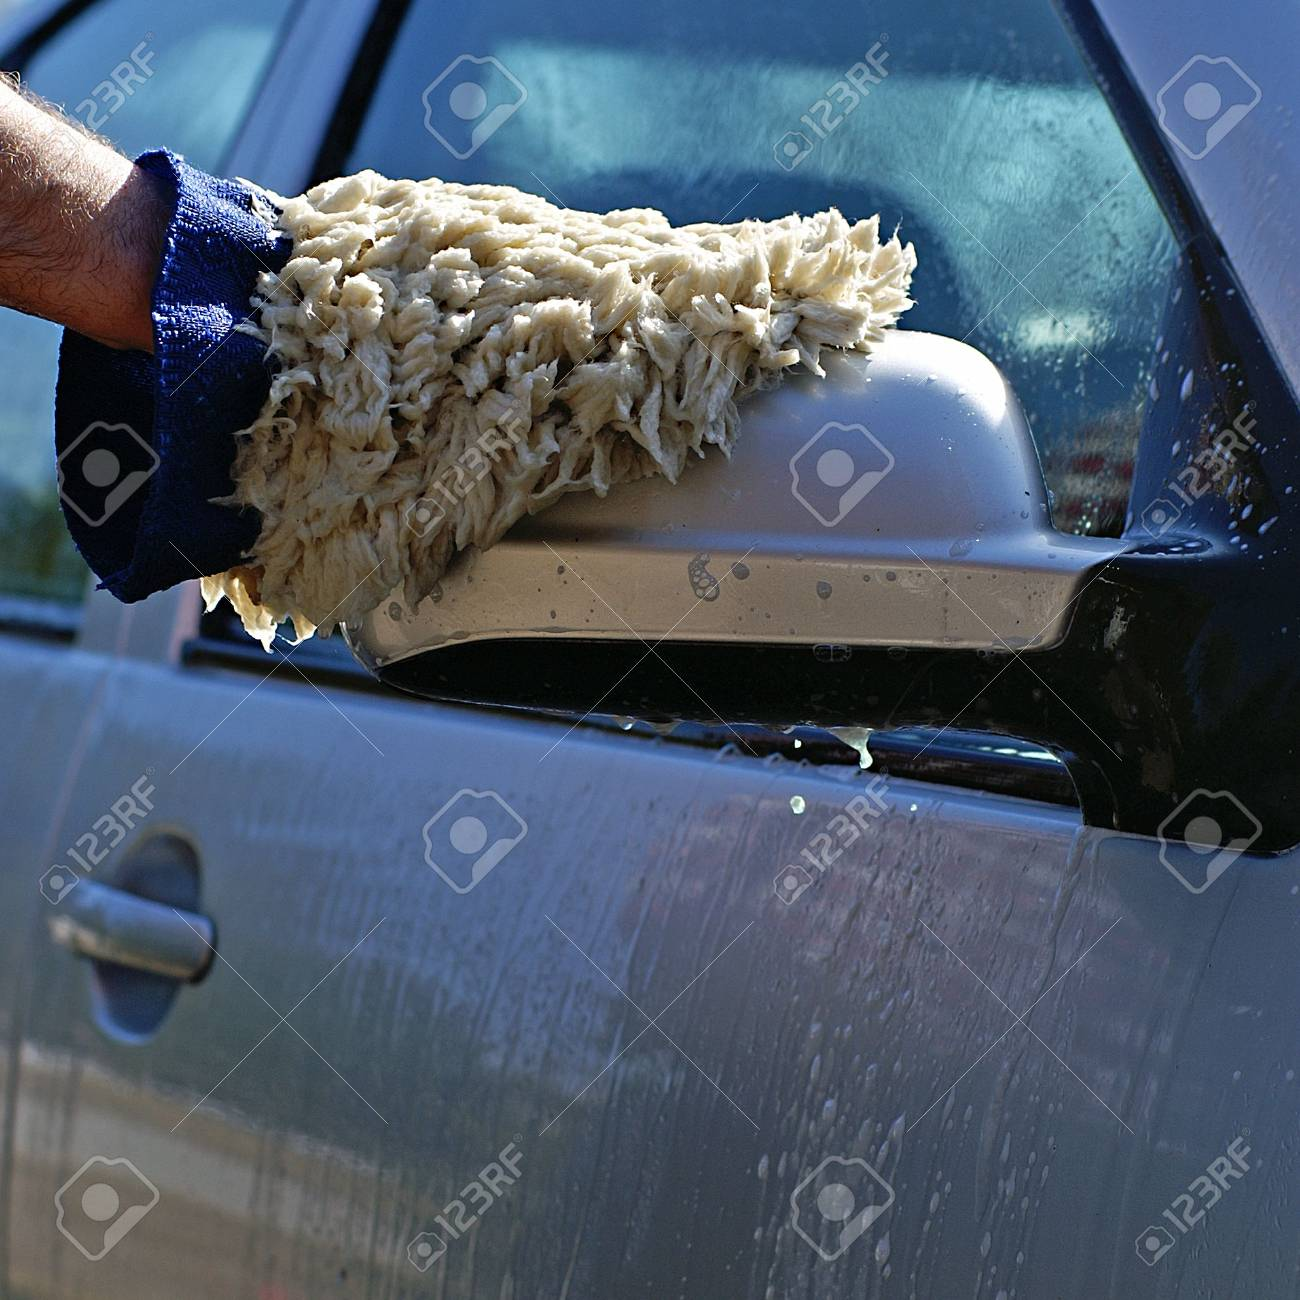 Cleaning the car after a road trip. - 2807607